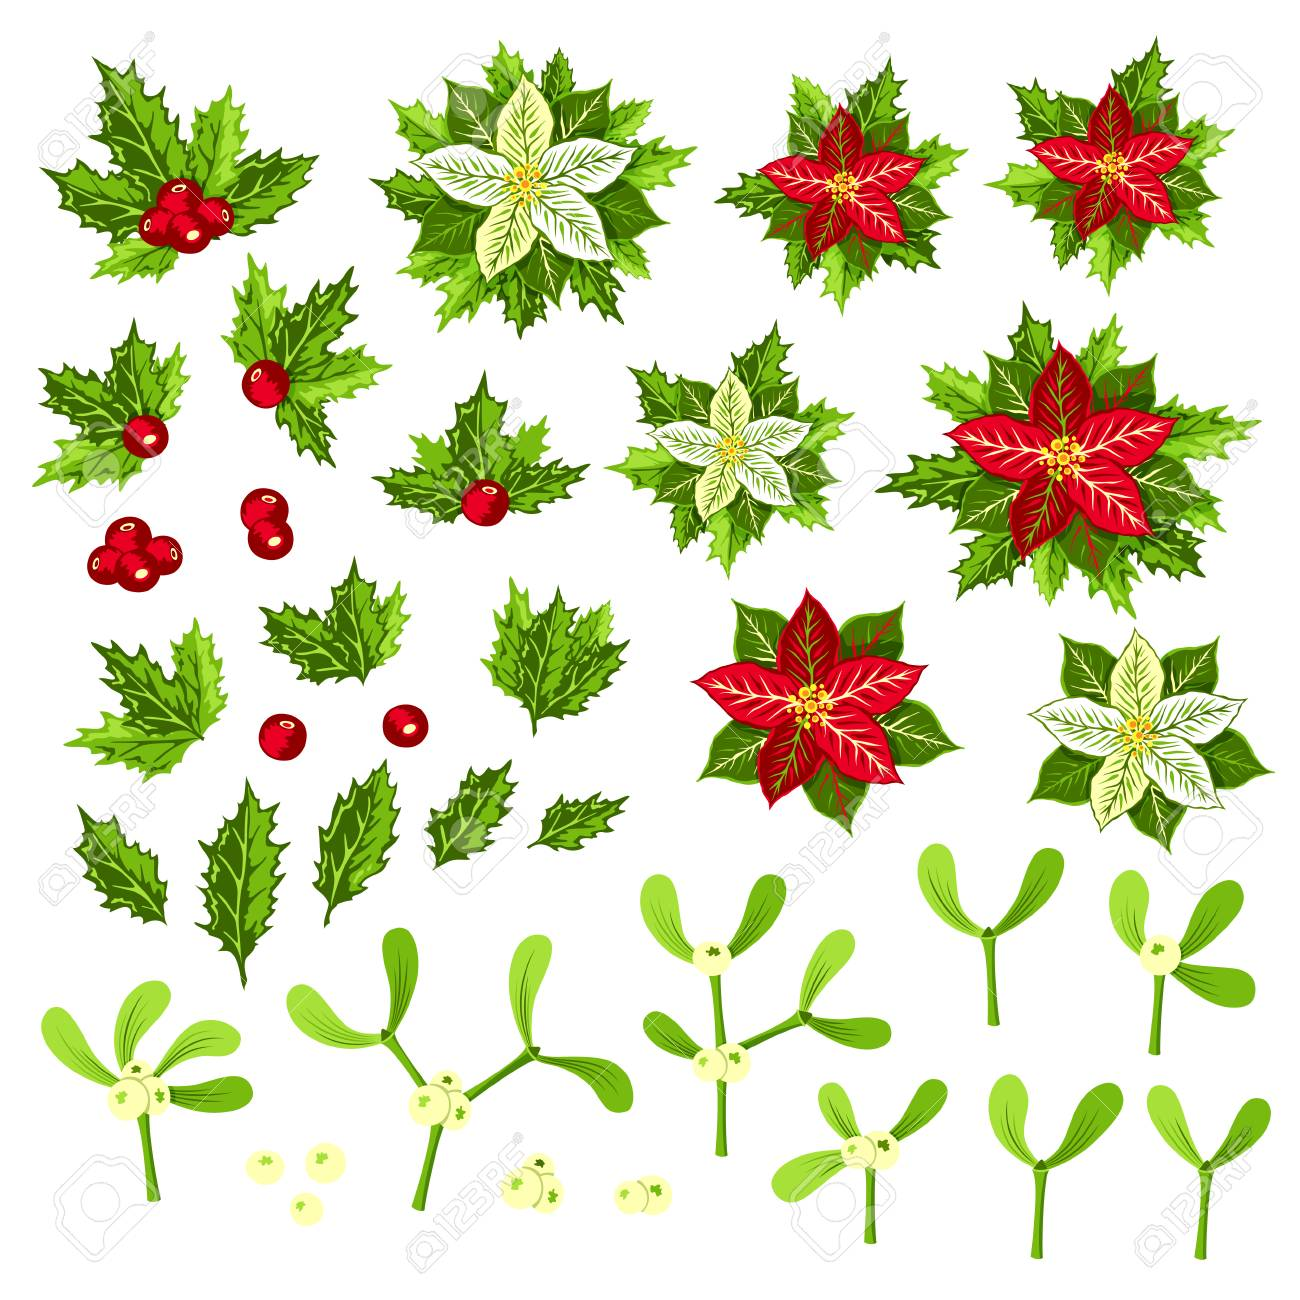 Christmas Plants Poinsettia Holly And Mistletoe Collection